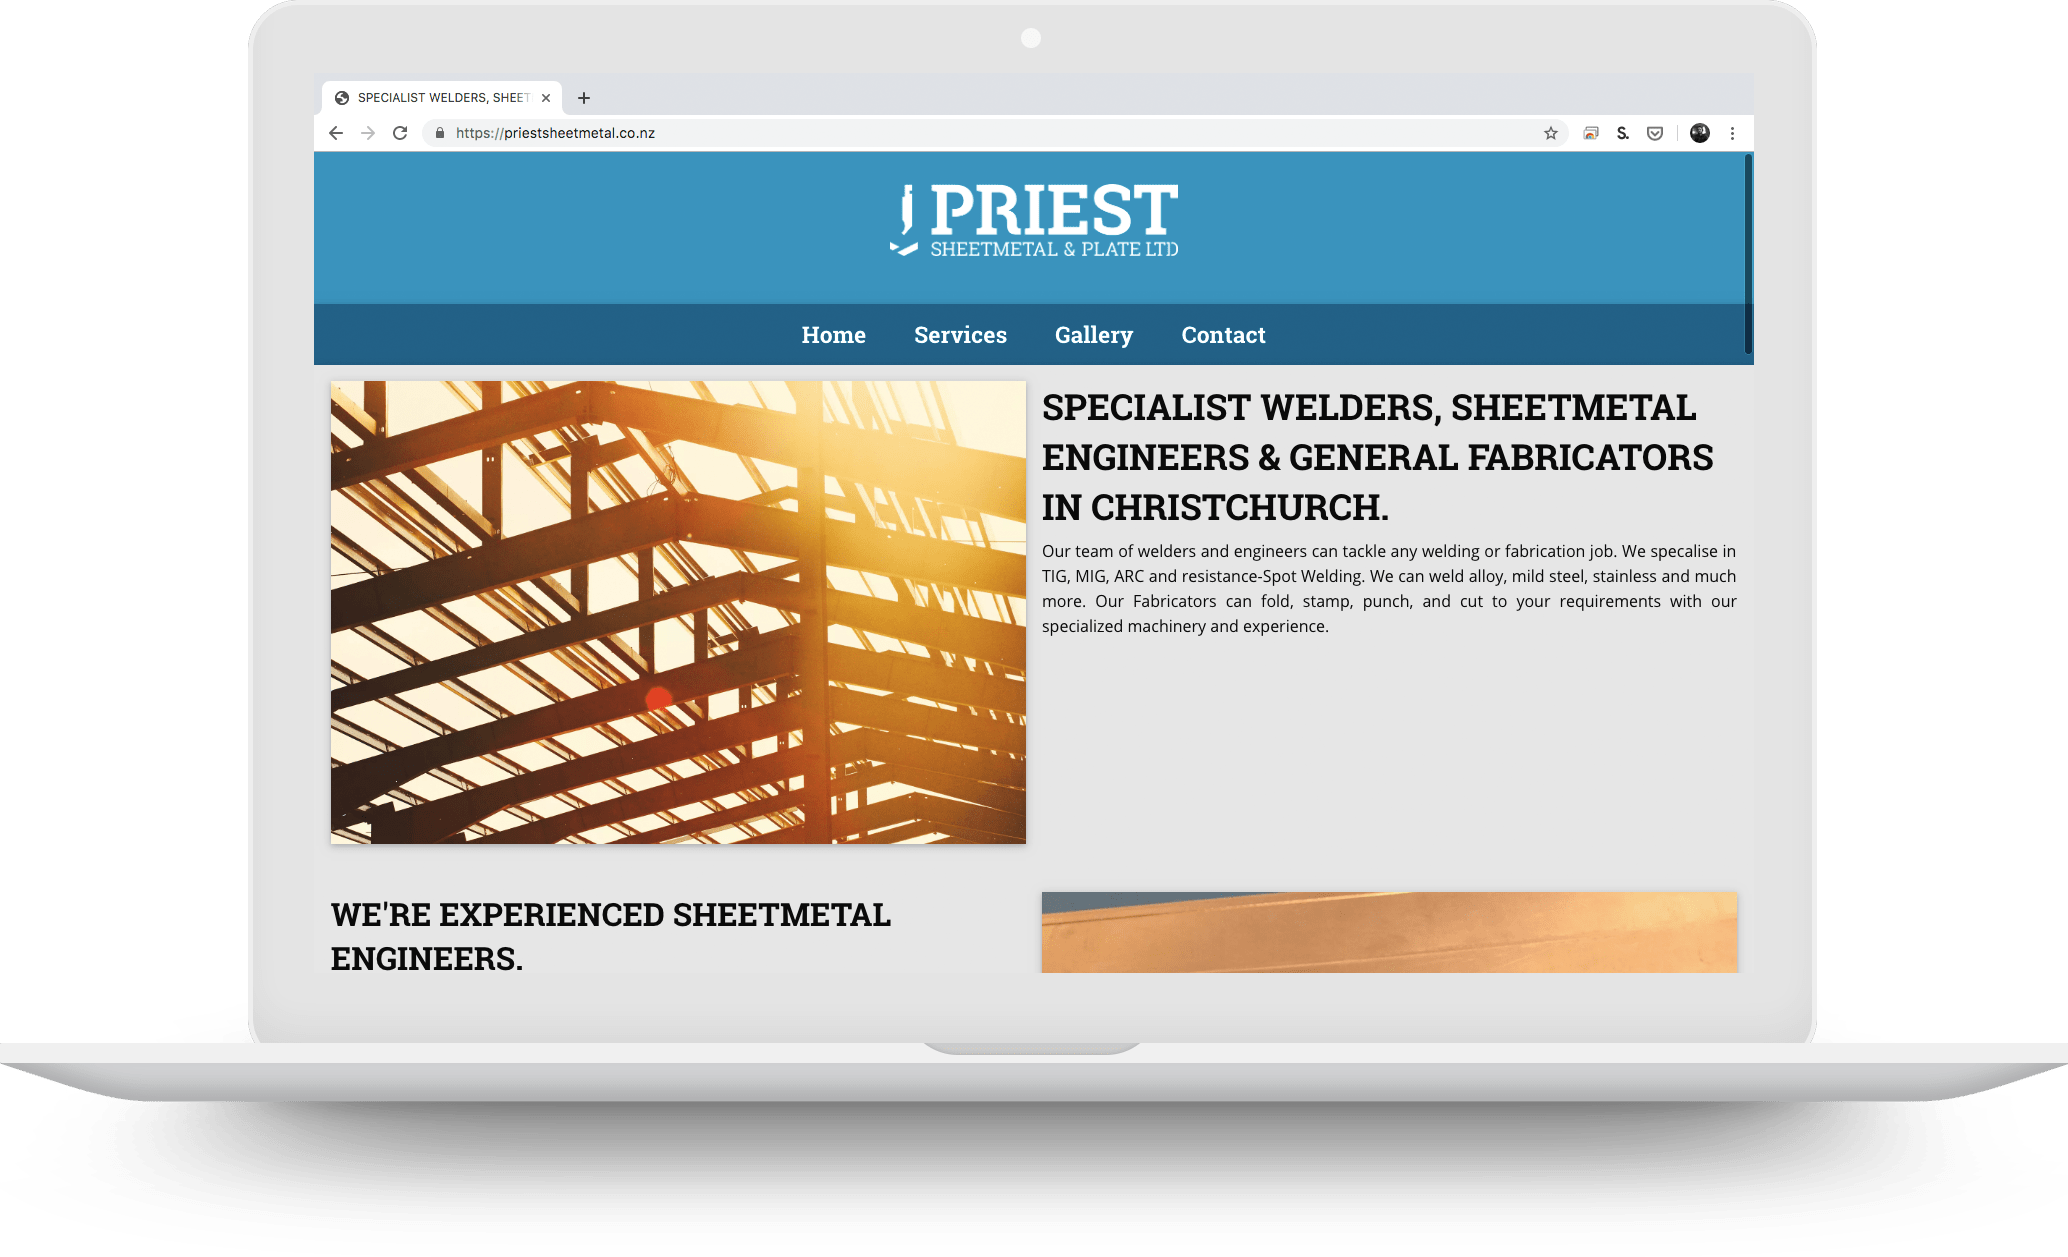 priest sheetmetal website developed by Riley Bathurst on a macbook